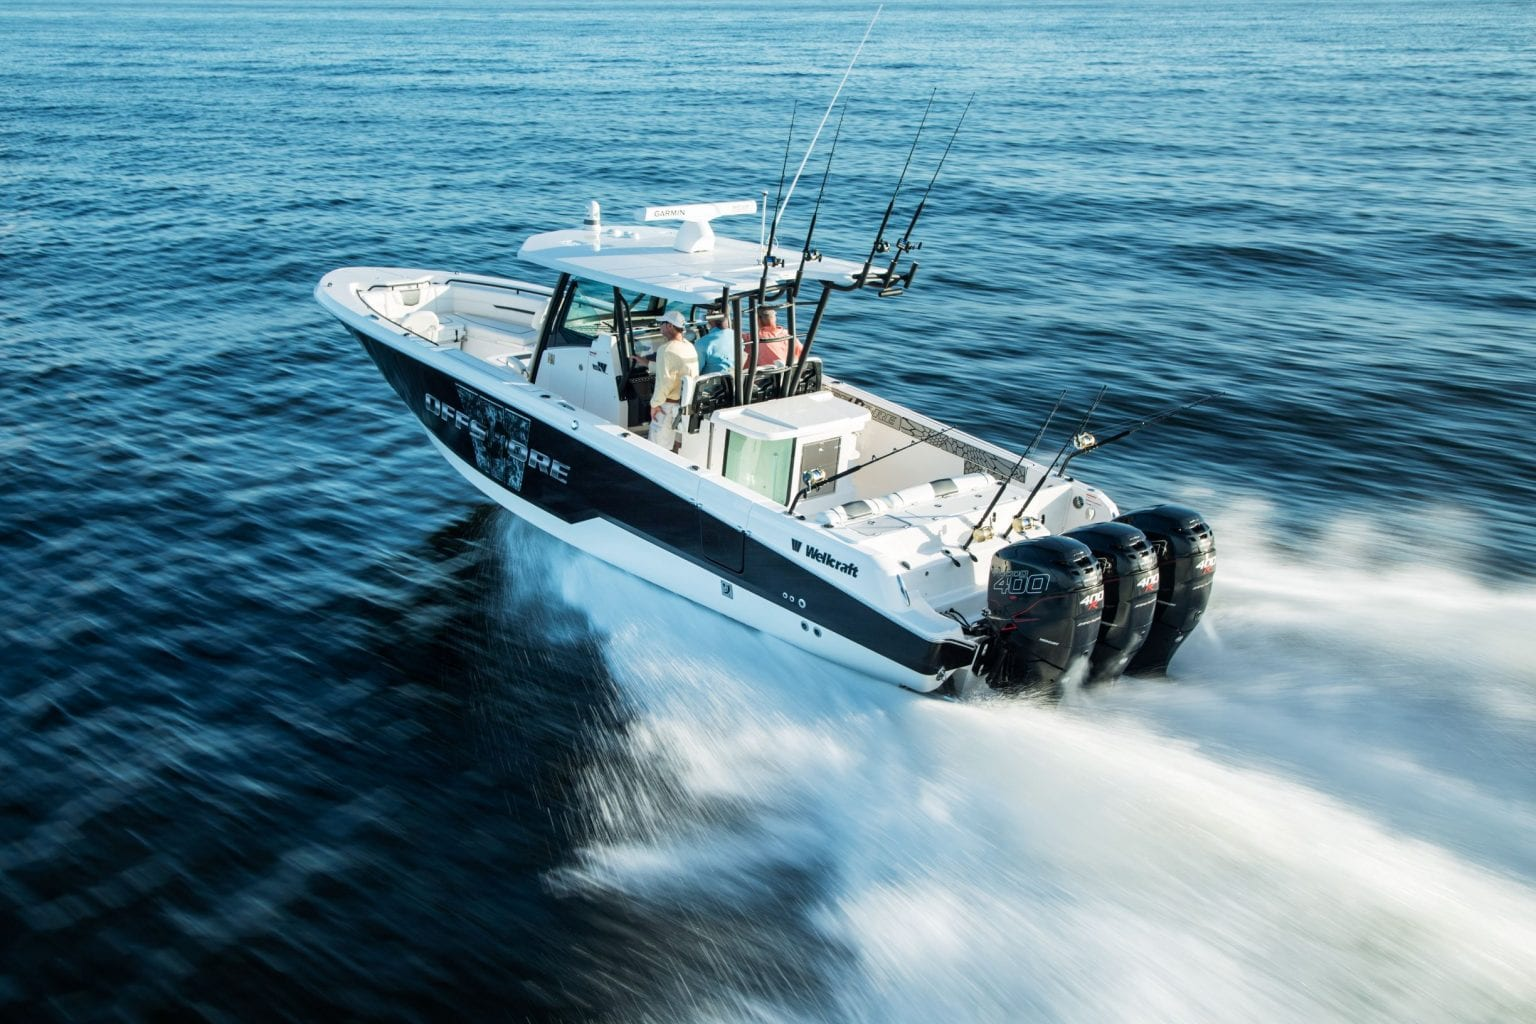 Fishing Boat Wellcraft Fisherman 352 - Stream Yachts